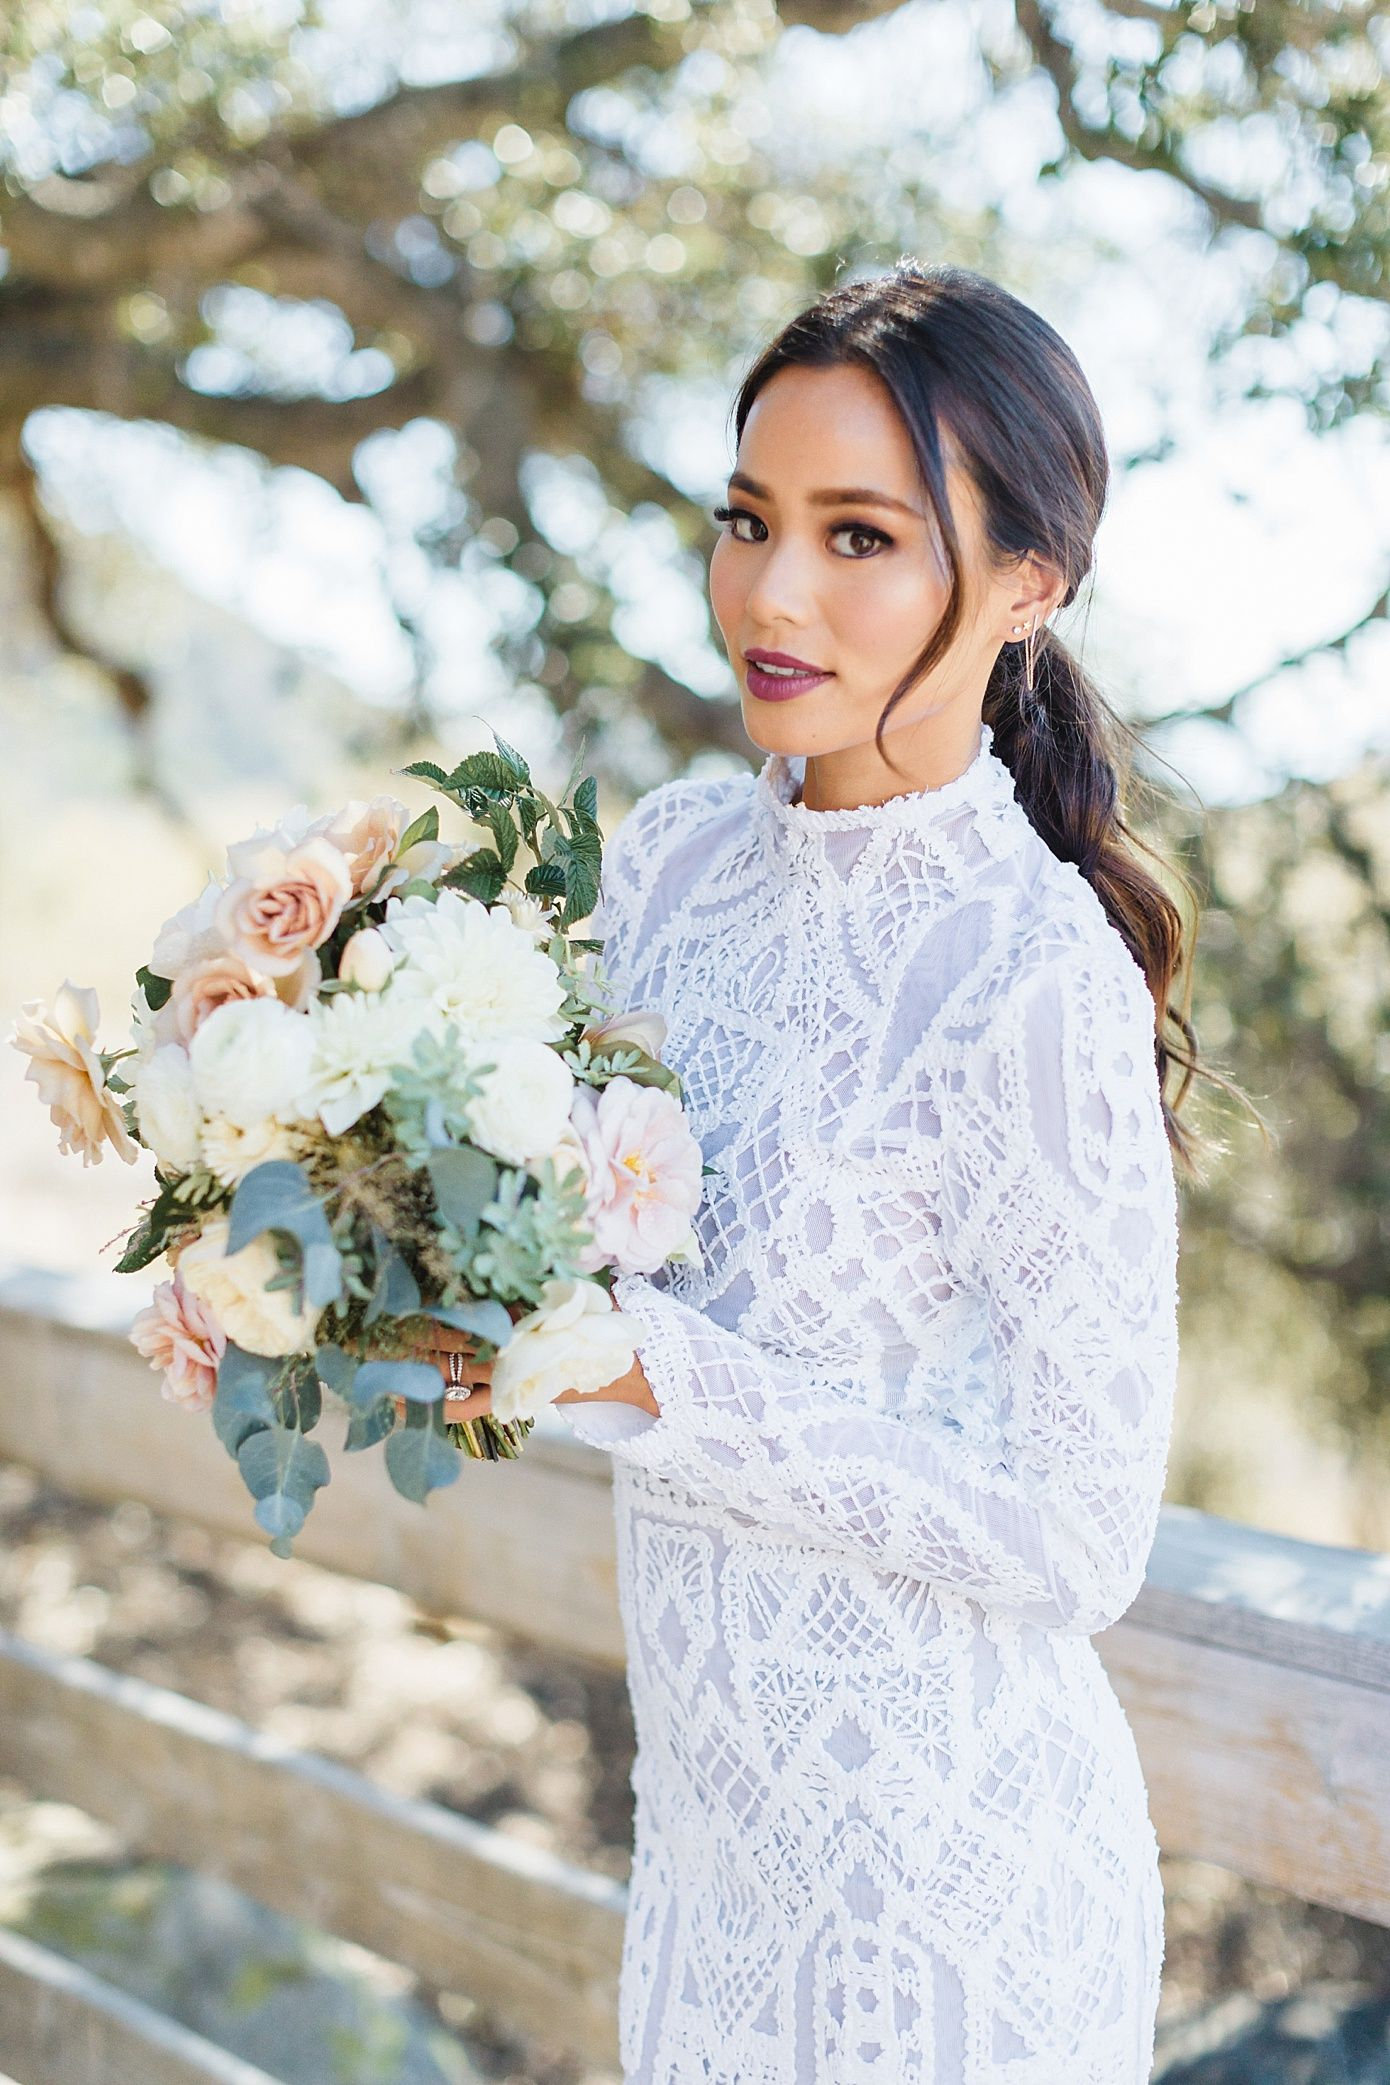 jamie chung wedding, chriselle lim fashion week, photoshop